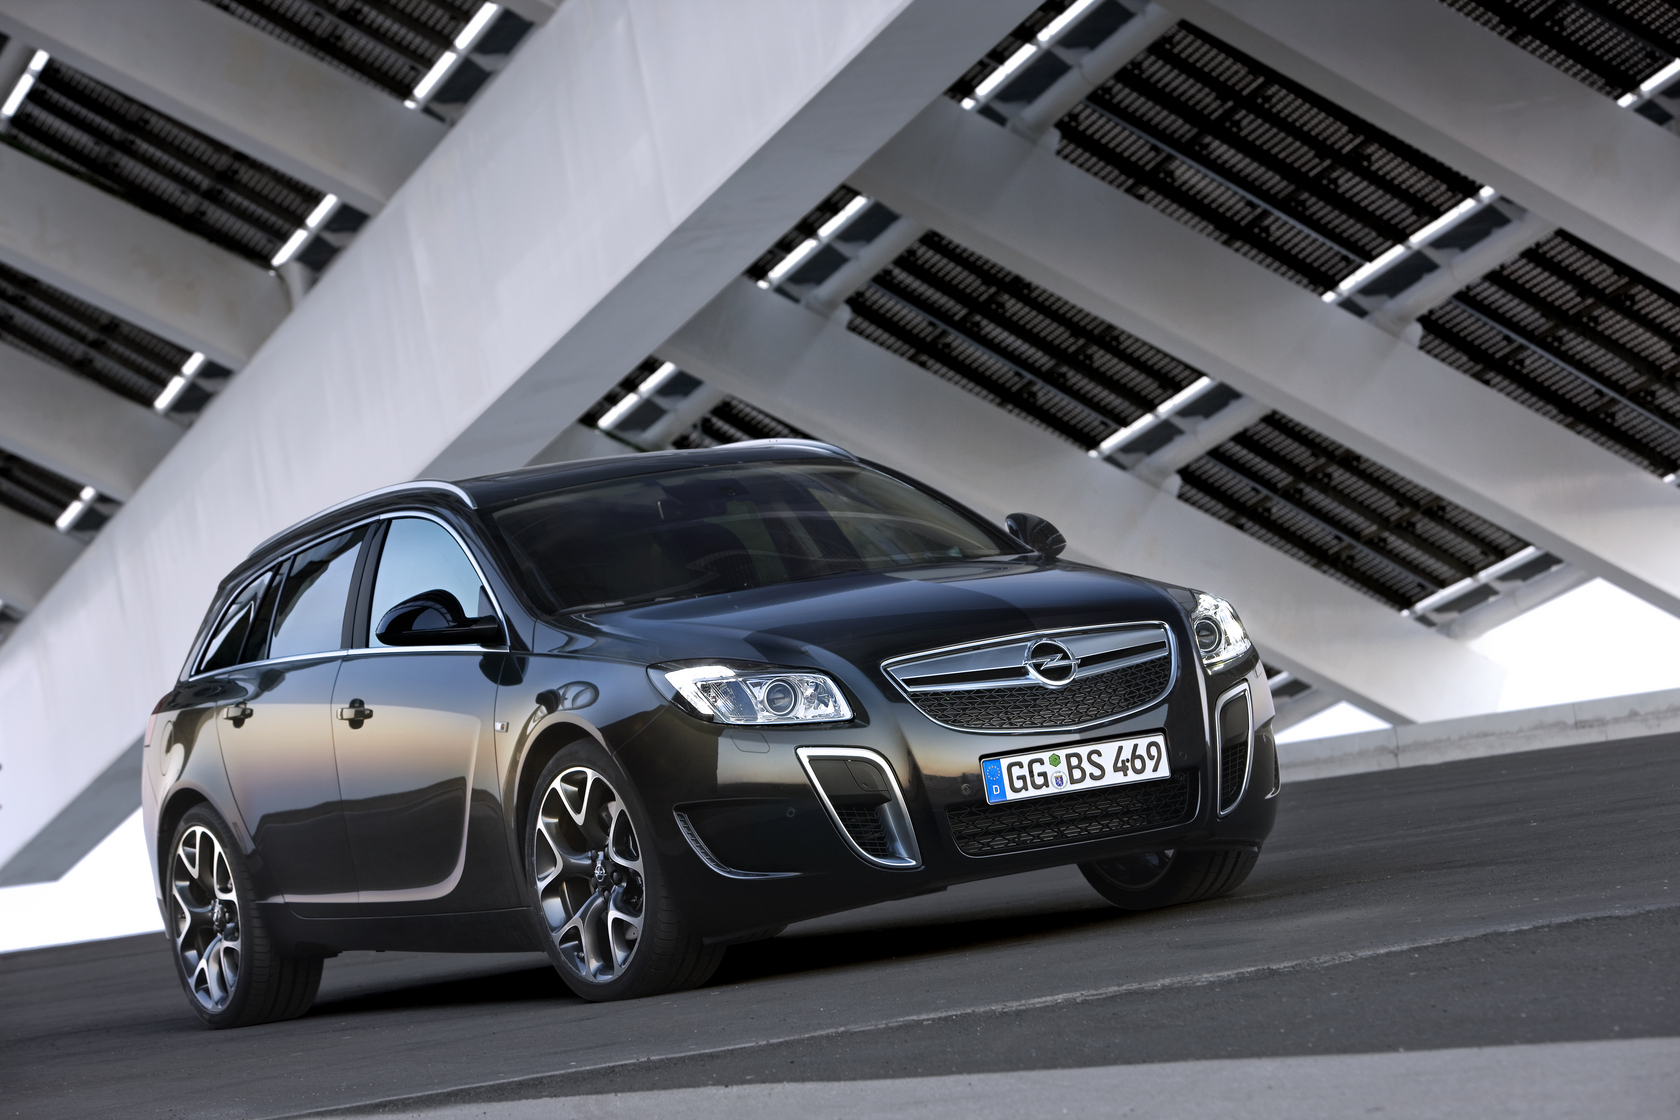 Opel Insignia OPC Sports Tourer Auto Wallpapers GroenLicht.be